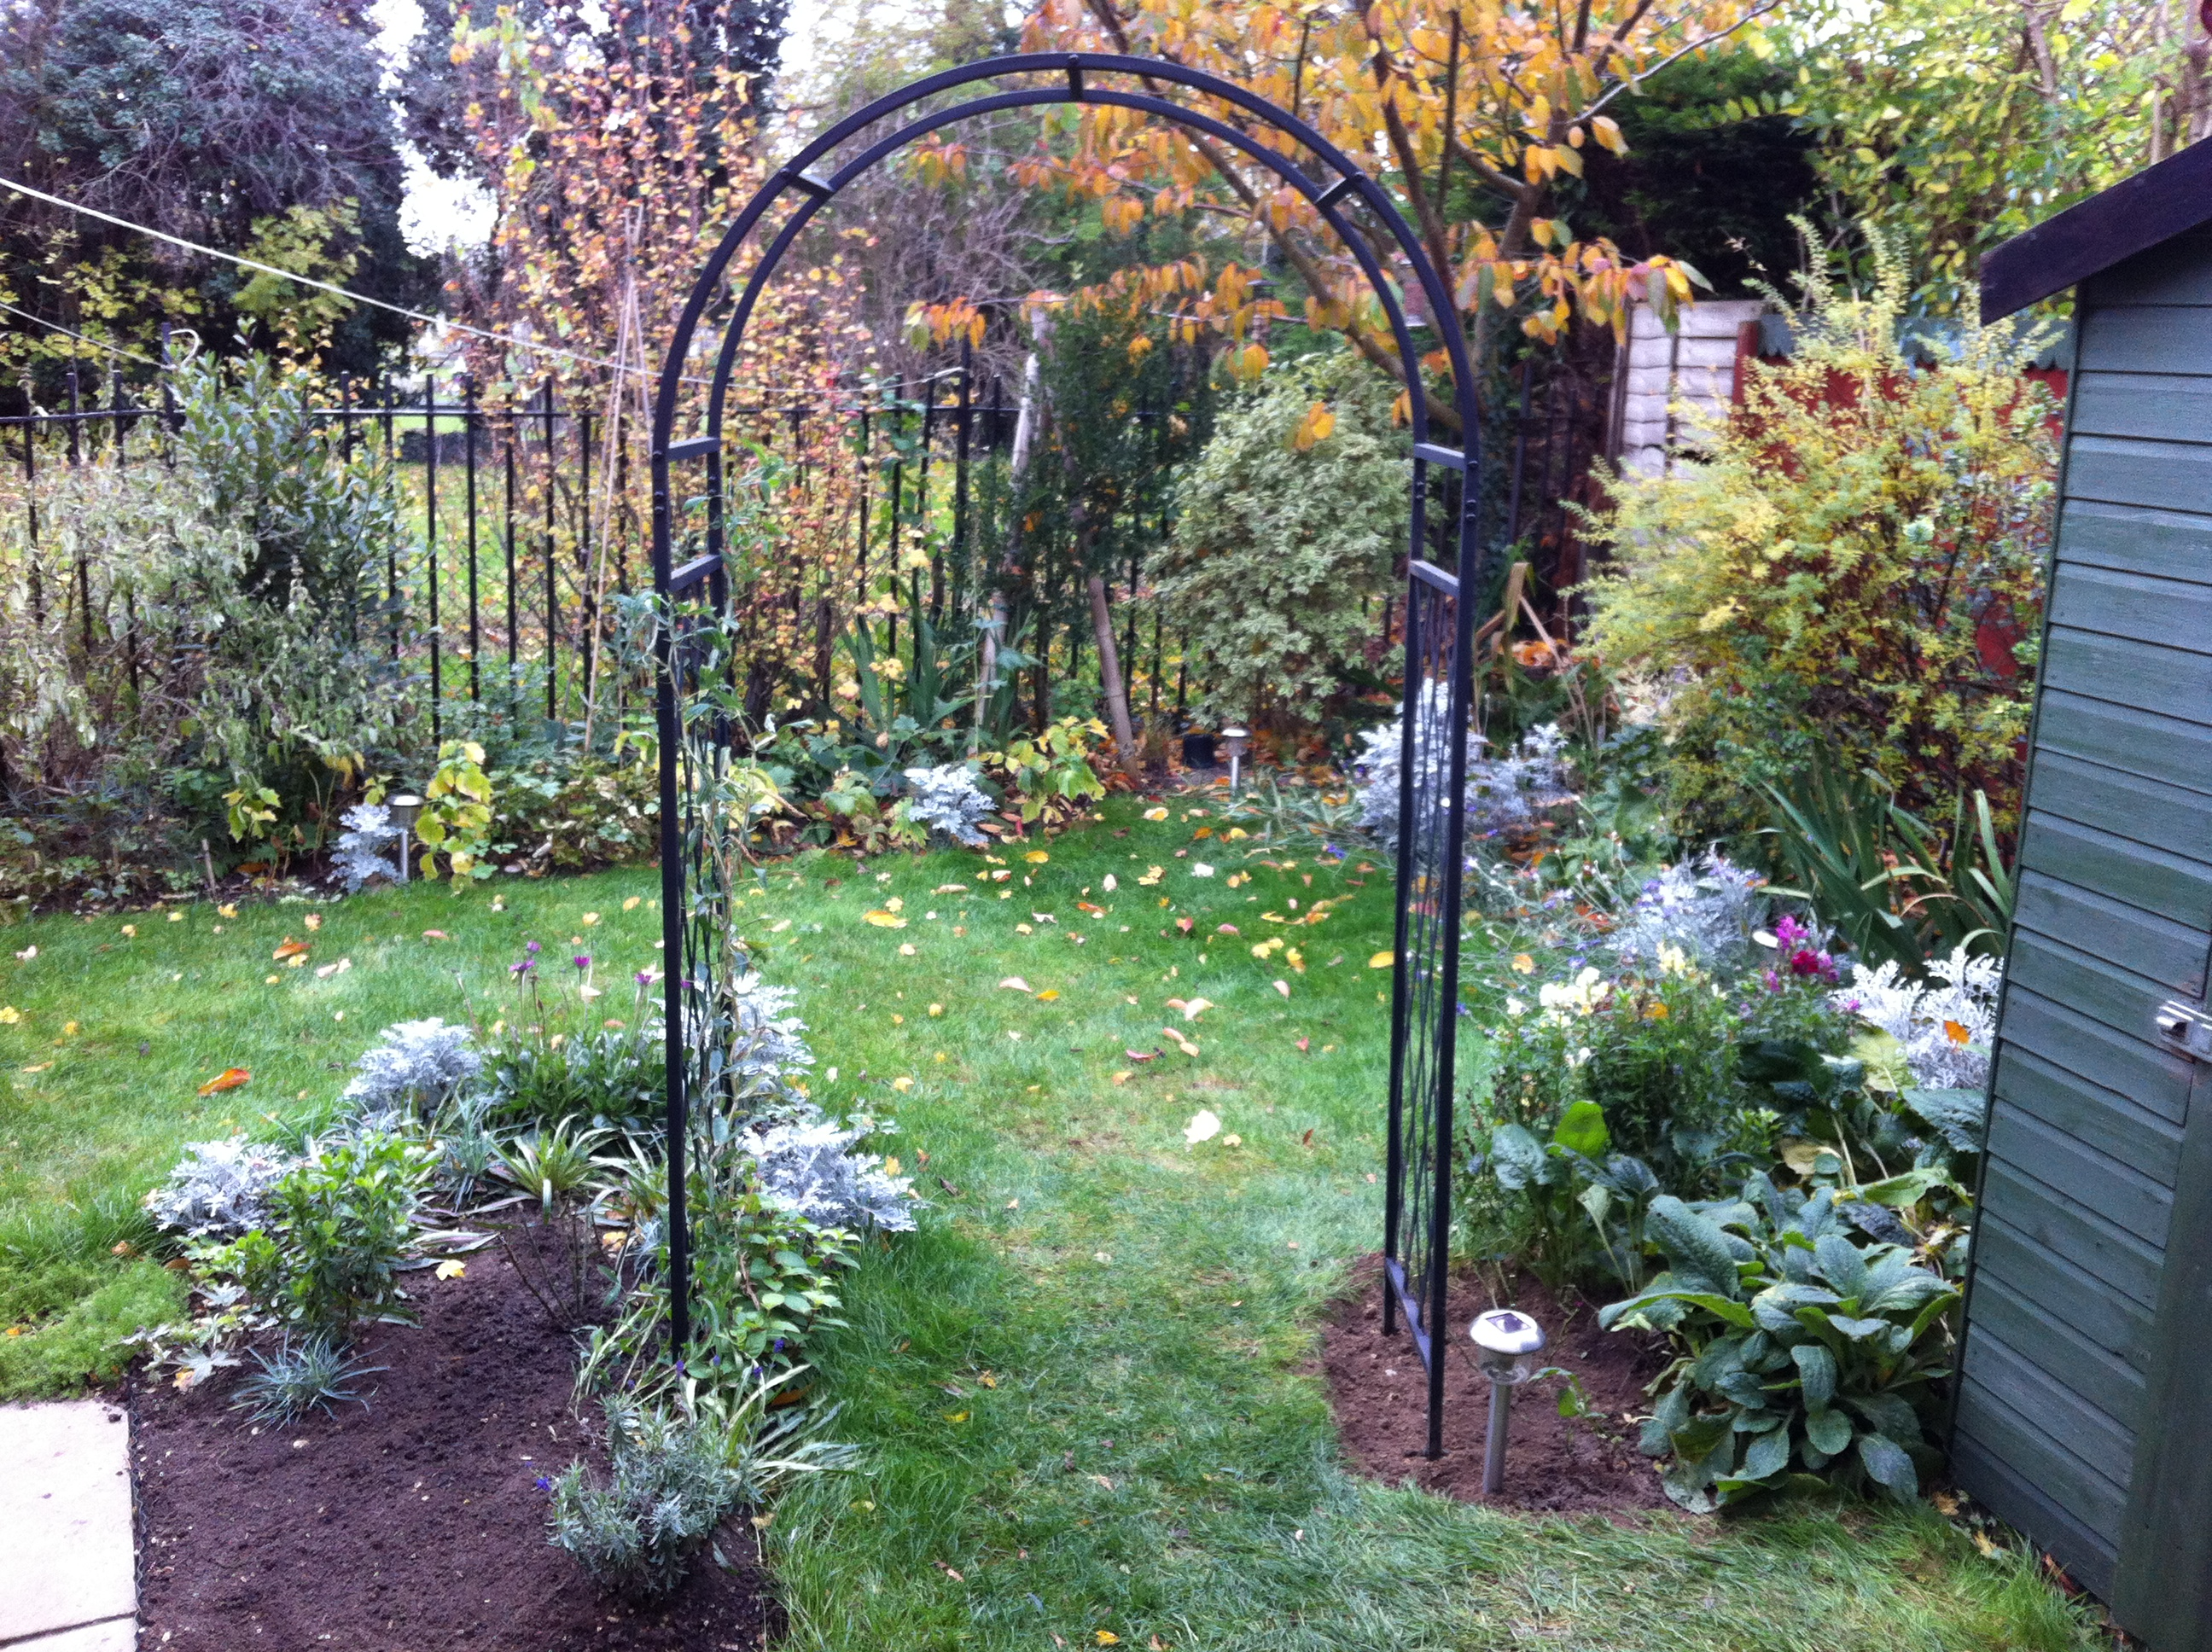 Garden arch designs photograph garden arch for Garden archway designs